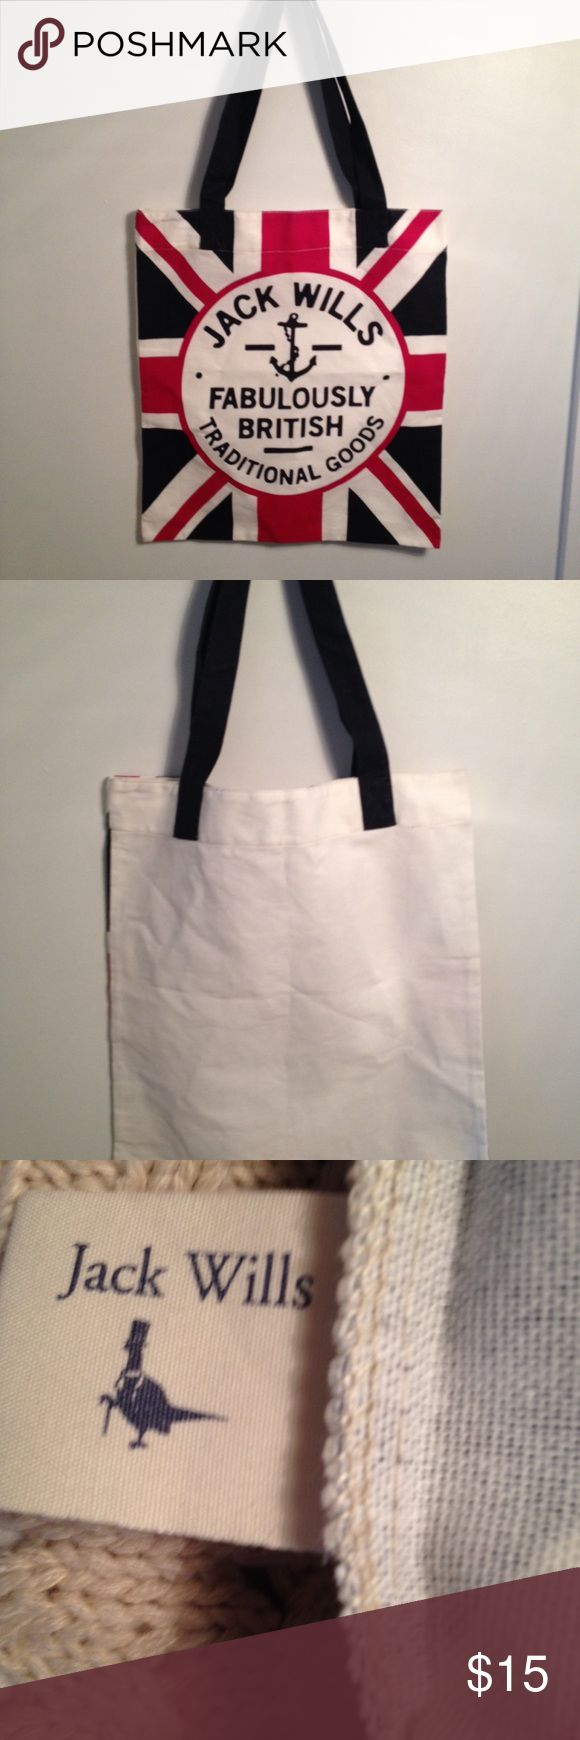 Jack Wills Fabulously British Tote Jack Wills Fabulously British Traditional Goods Tote. Union Jack design. New. Excellent condition. Wash instructions on interior tag. 100% cotton. Jack Wills Bags Totes